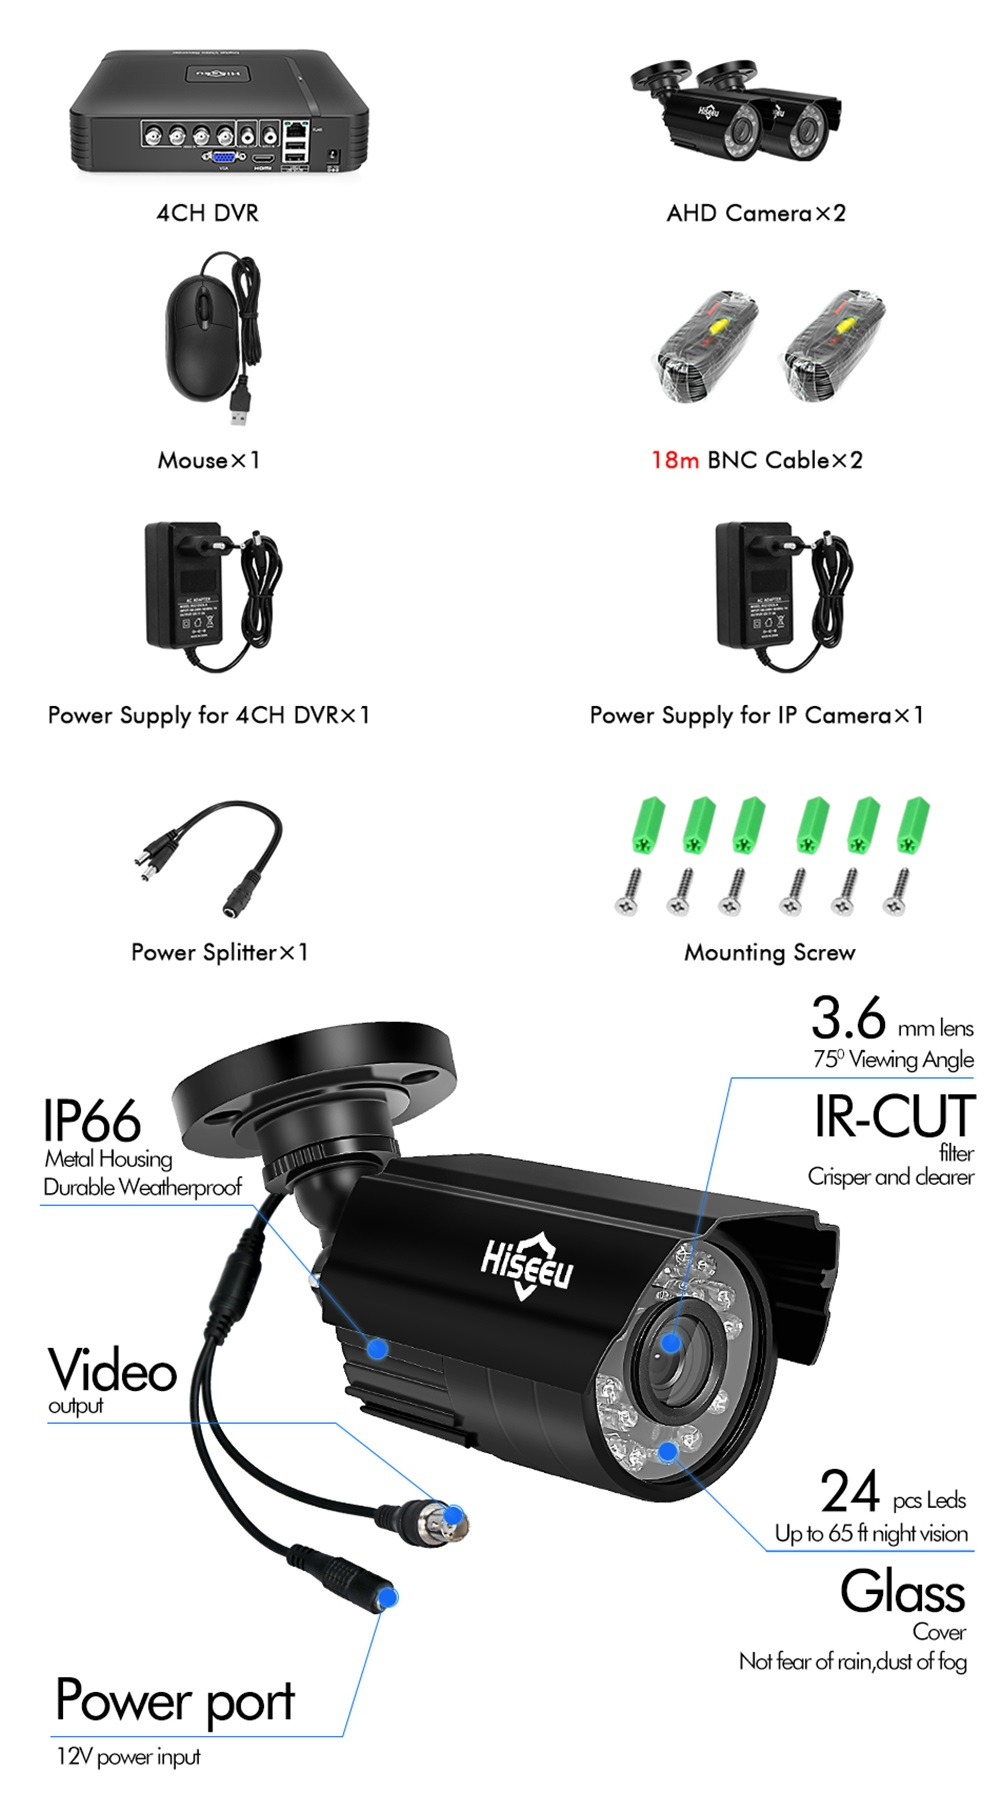 Hiseeu HD 4CH 1080N 5 in 1 AHD DVR Kit CCTV System 2pcs 720P AHD Waterproof IR Camera P2P Security Surveillance Set